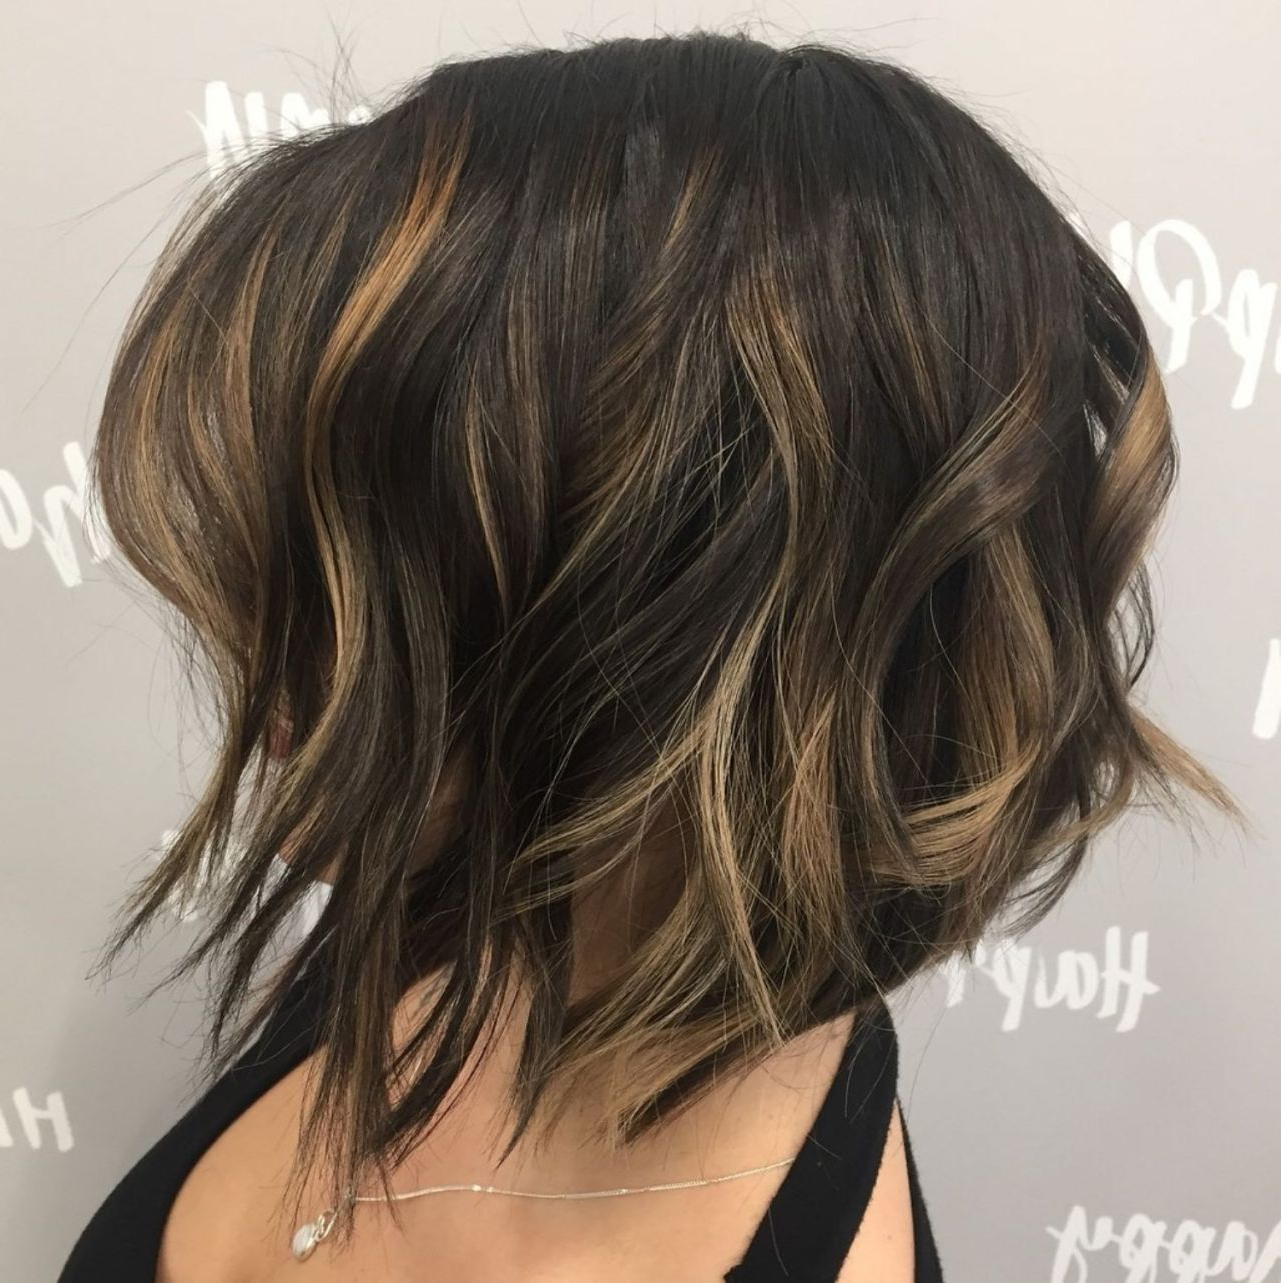 60 Messy Bob Hairstyles For Your Trendy Casual Looks | Hair Within Angled Brunette Bob Hairstyles With Messy Curls (View 10 of 20)